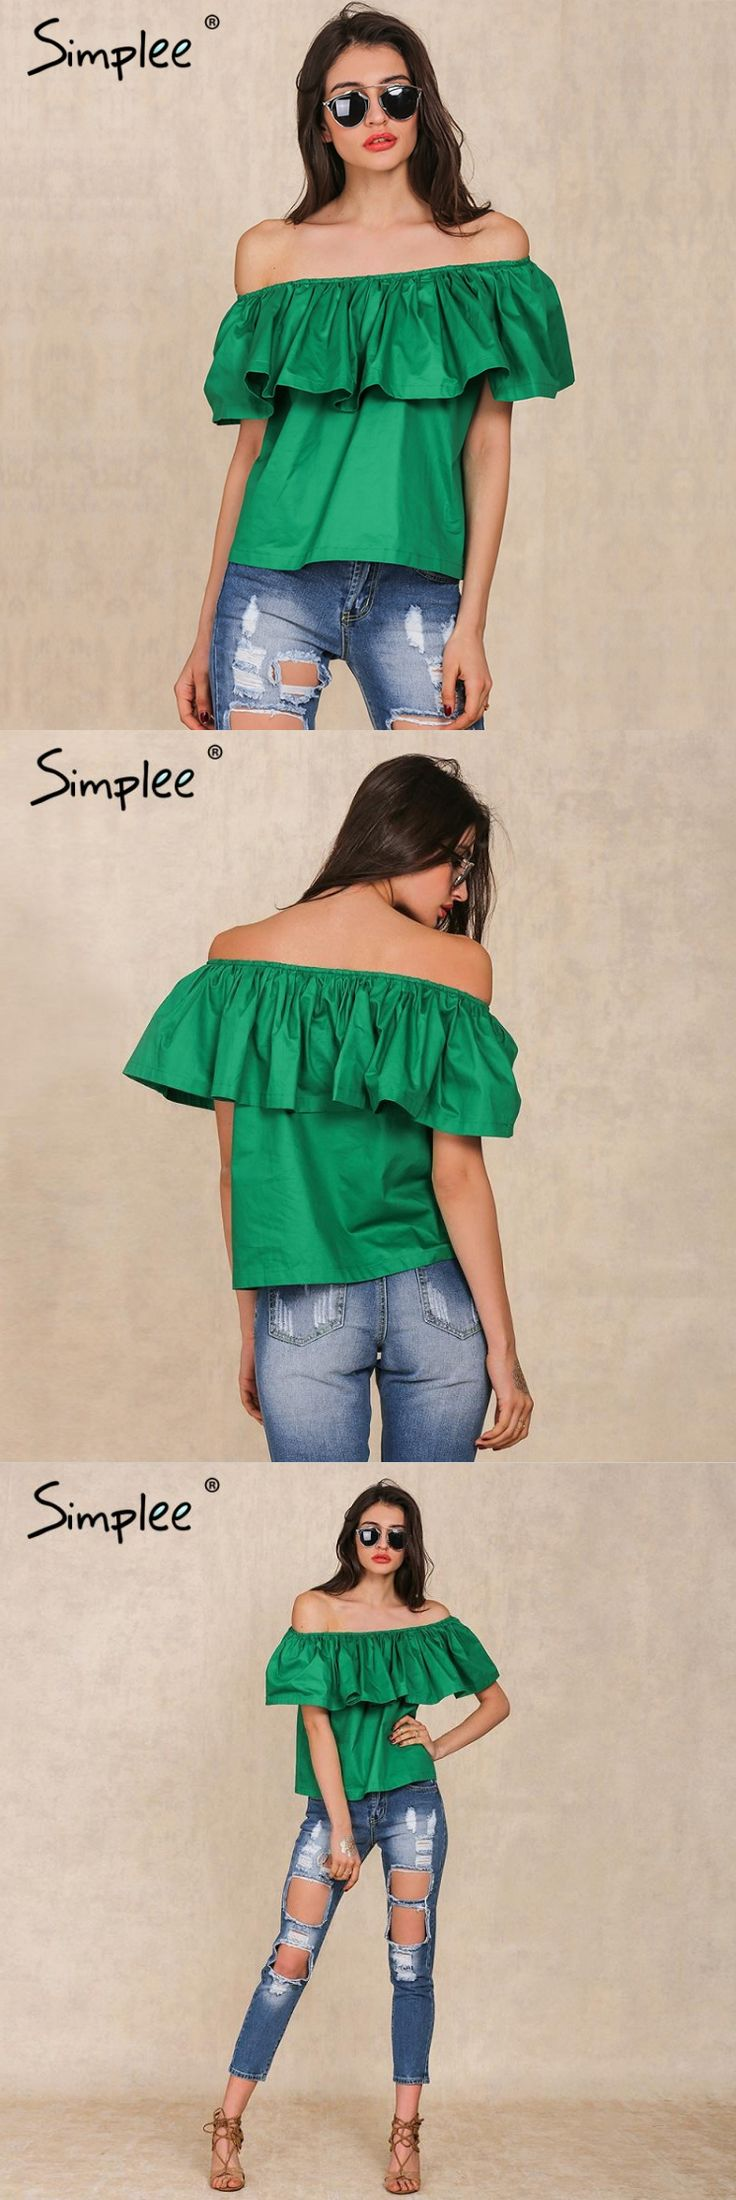 <3 Buy it now : Apparel Sexy slash neck ruffles women tops tees Off shoulder beach summer style tops Women blouses shirt party tube top <3 Price:  $9.79  Many colors available ;)